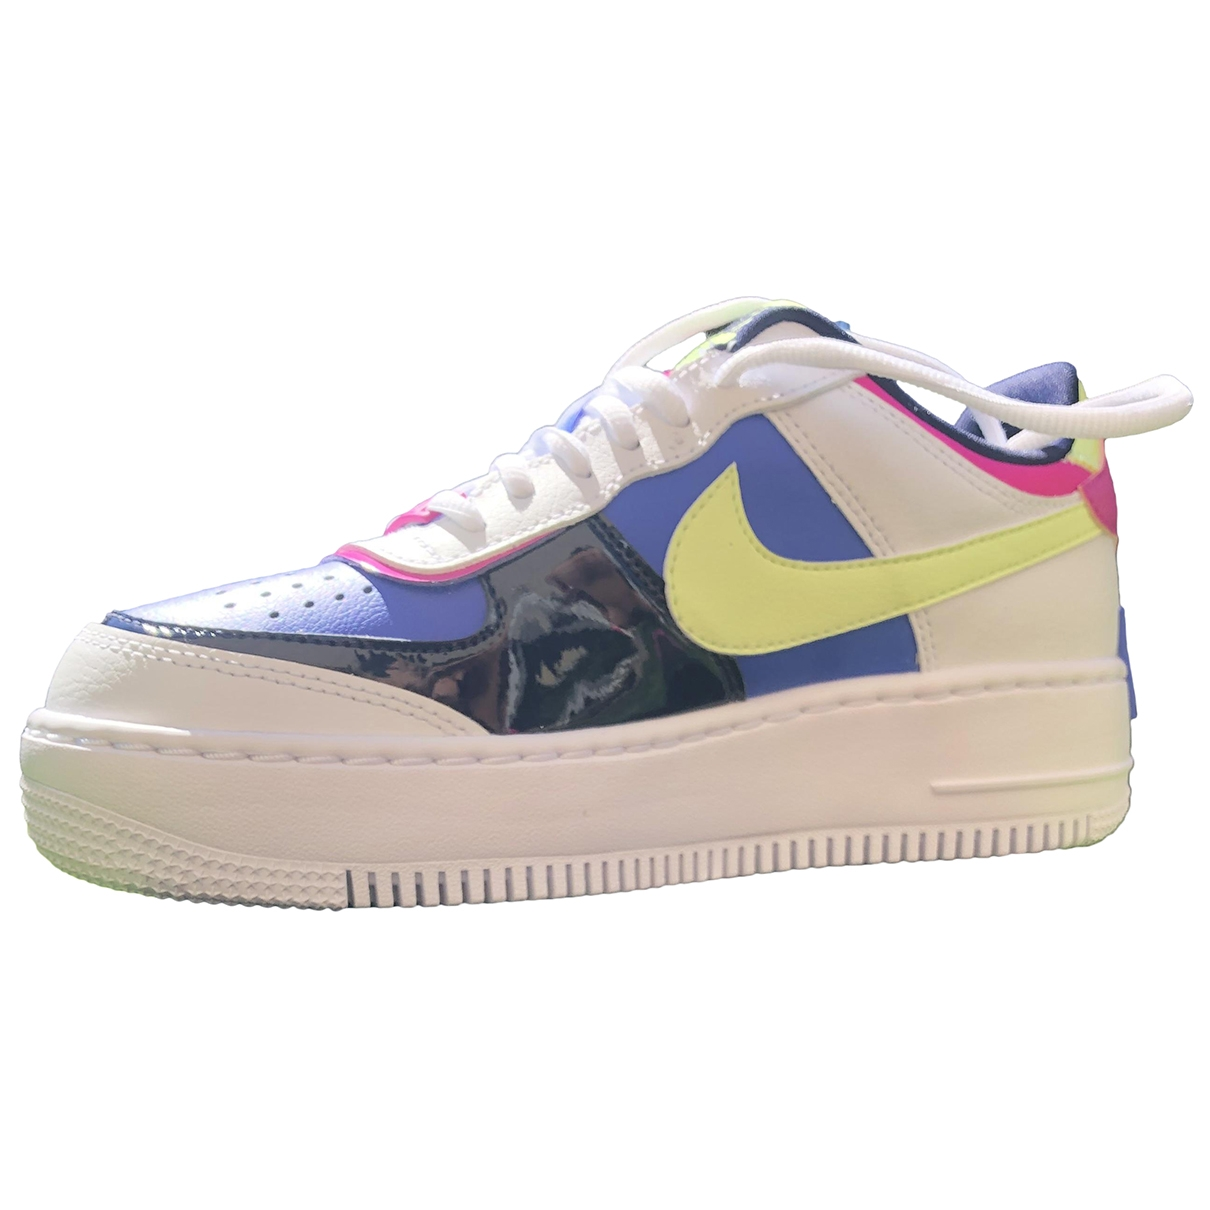 Nike Air Force 1 Sneakers in  Bunt Leder